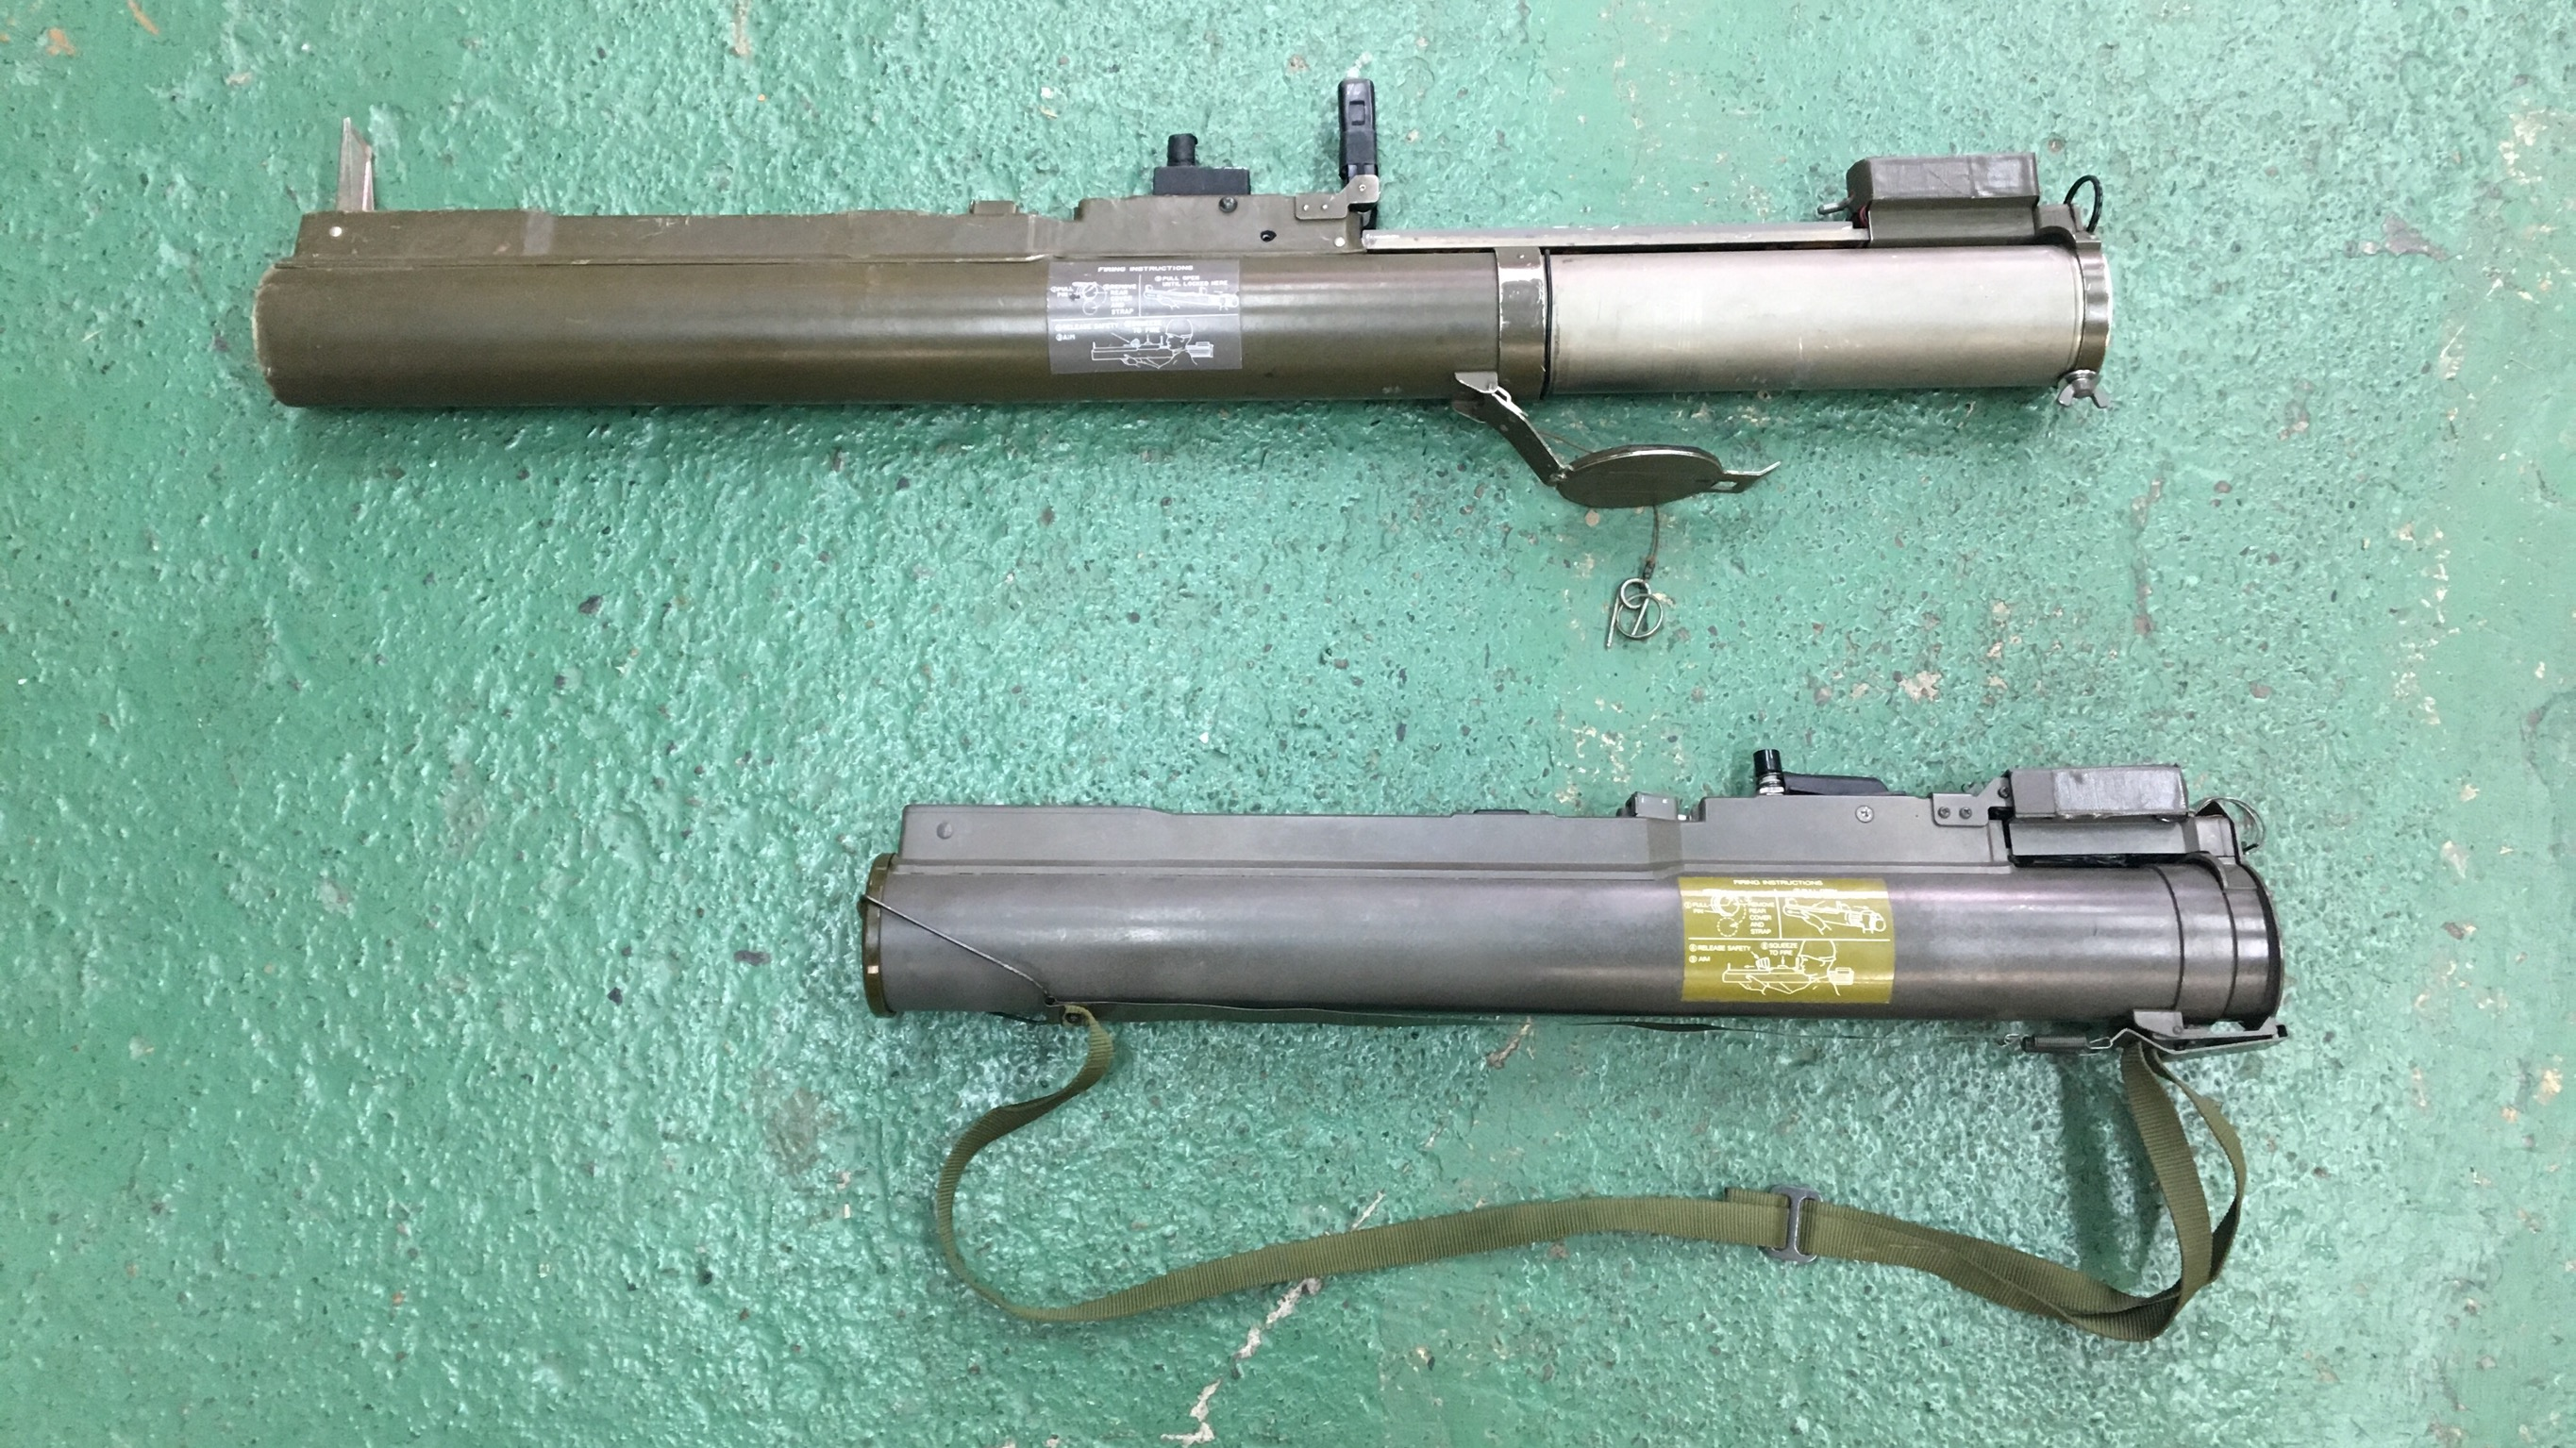 M72 LAW(Light Anti-Tank Weapon)